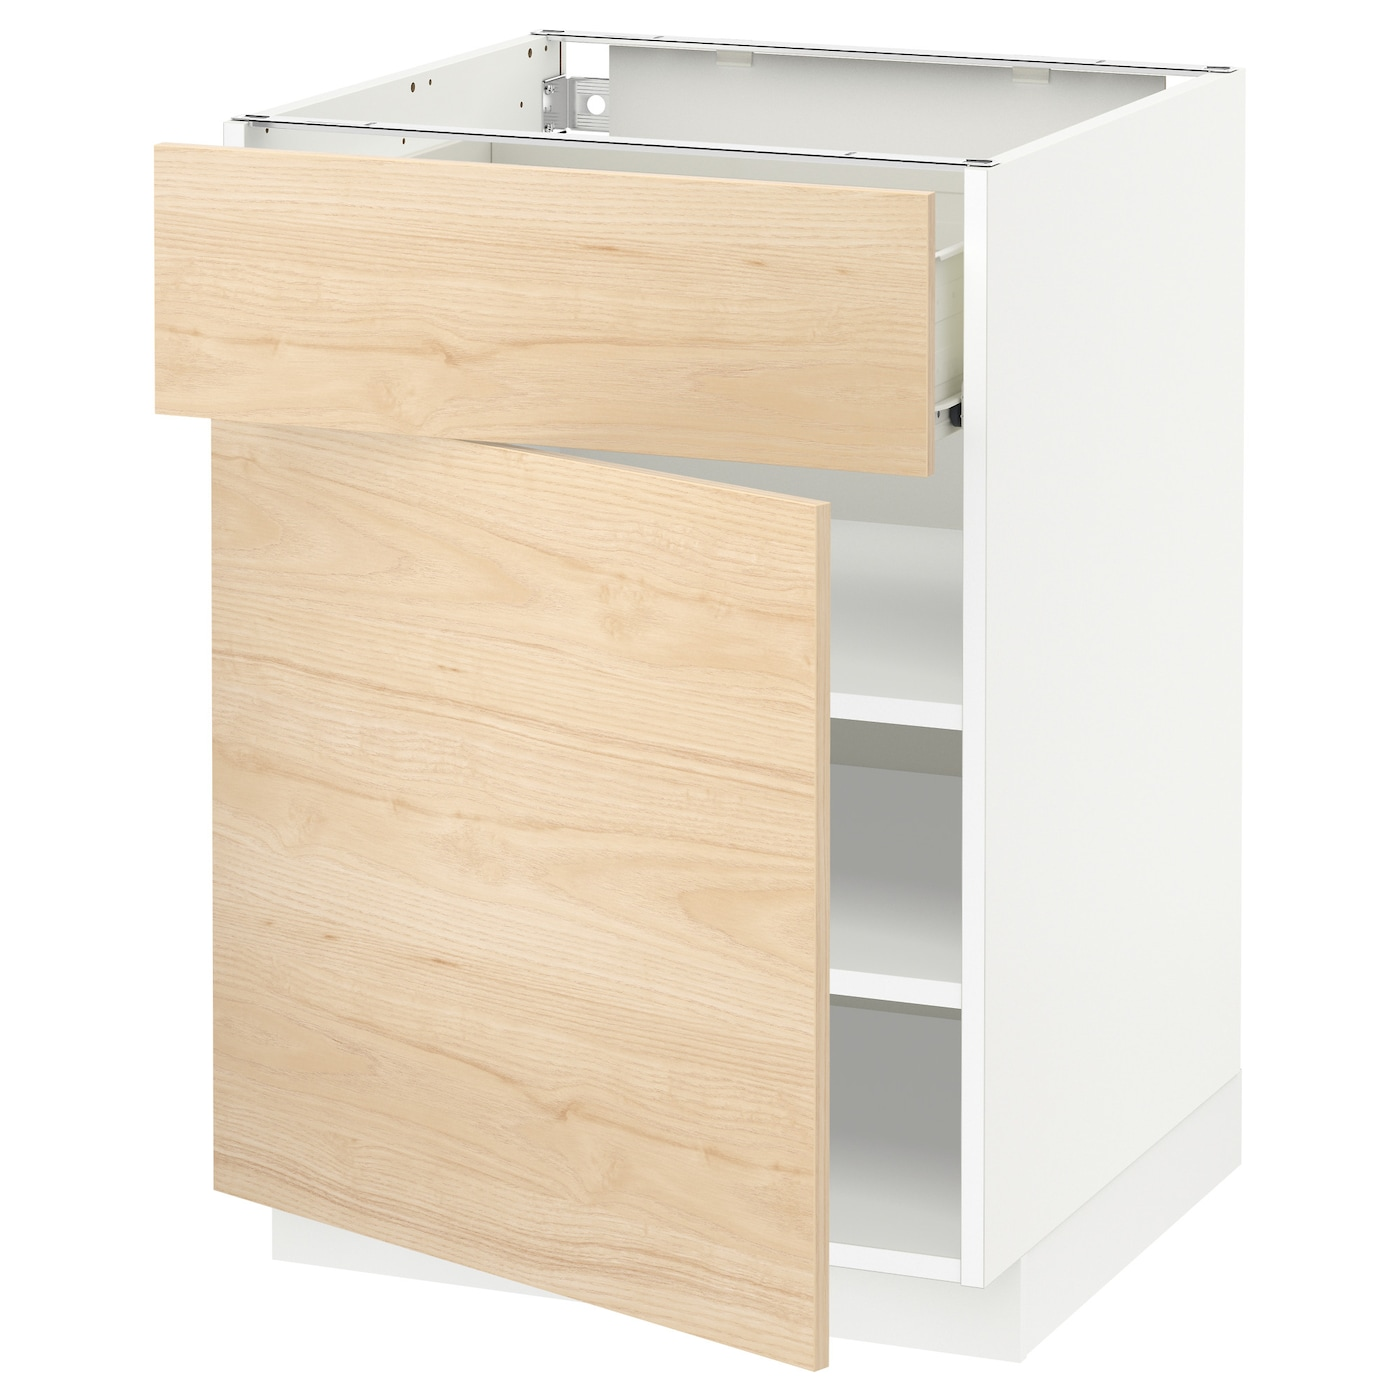 Metod f rvara base cabinet with drawer door white for Ash wood kitchen cabinets